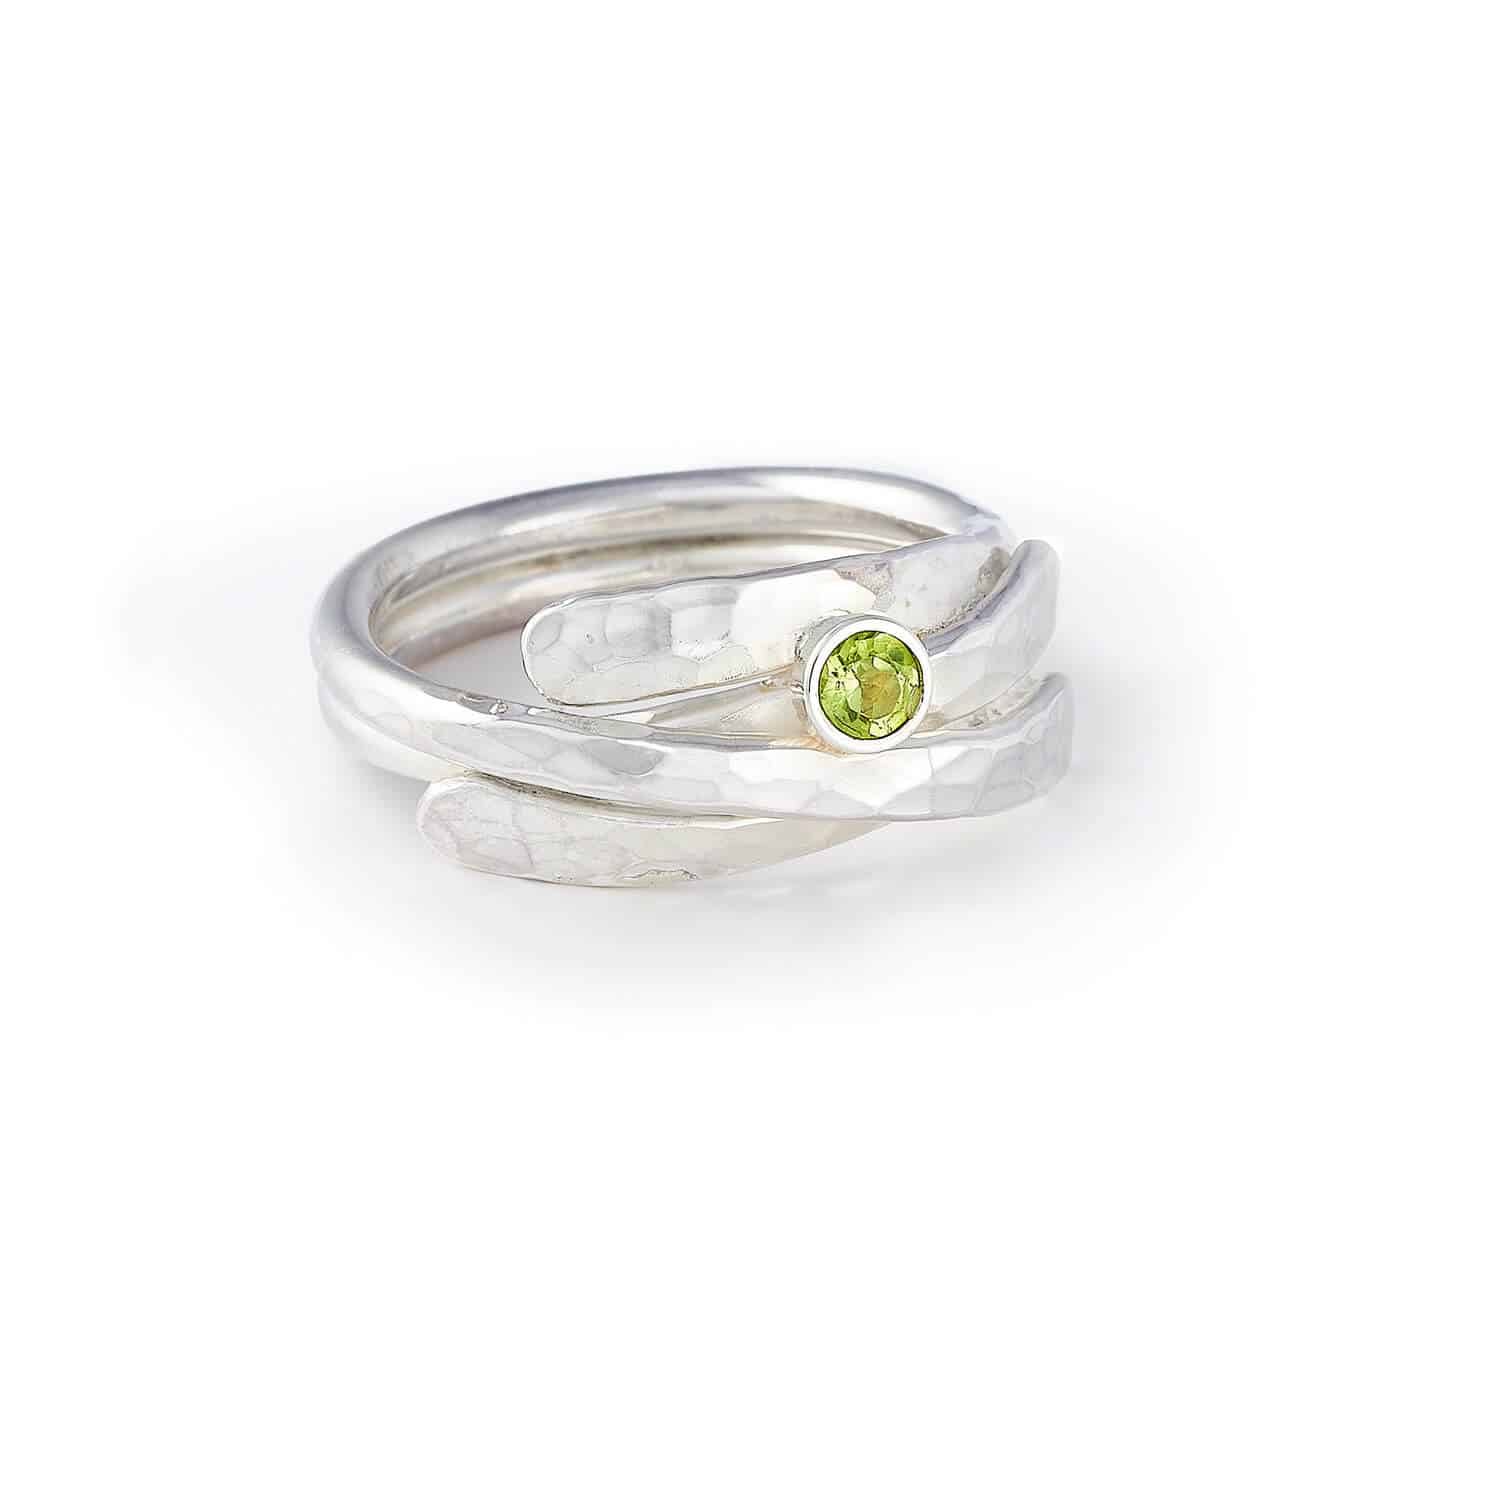 Jewellery product photography of a silver ring for Mackay and Pearson